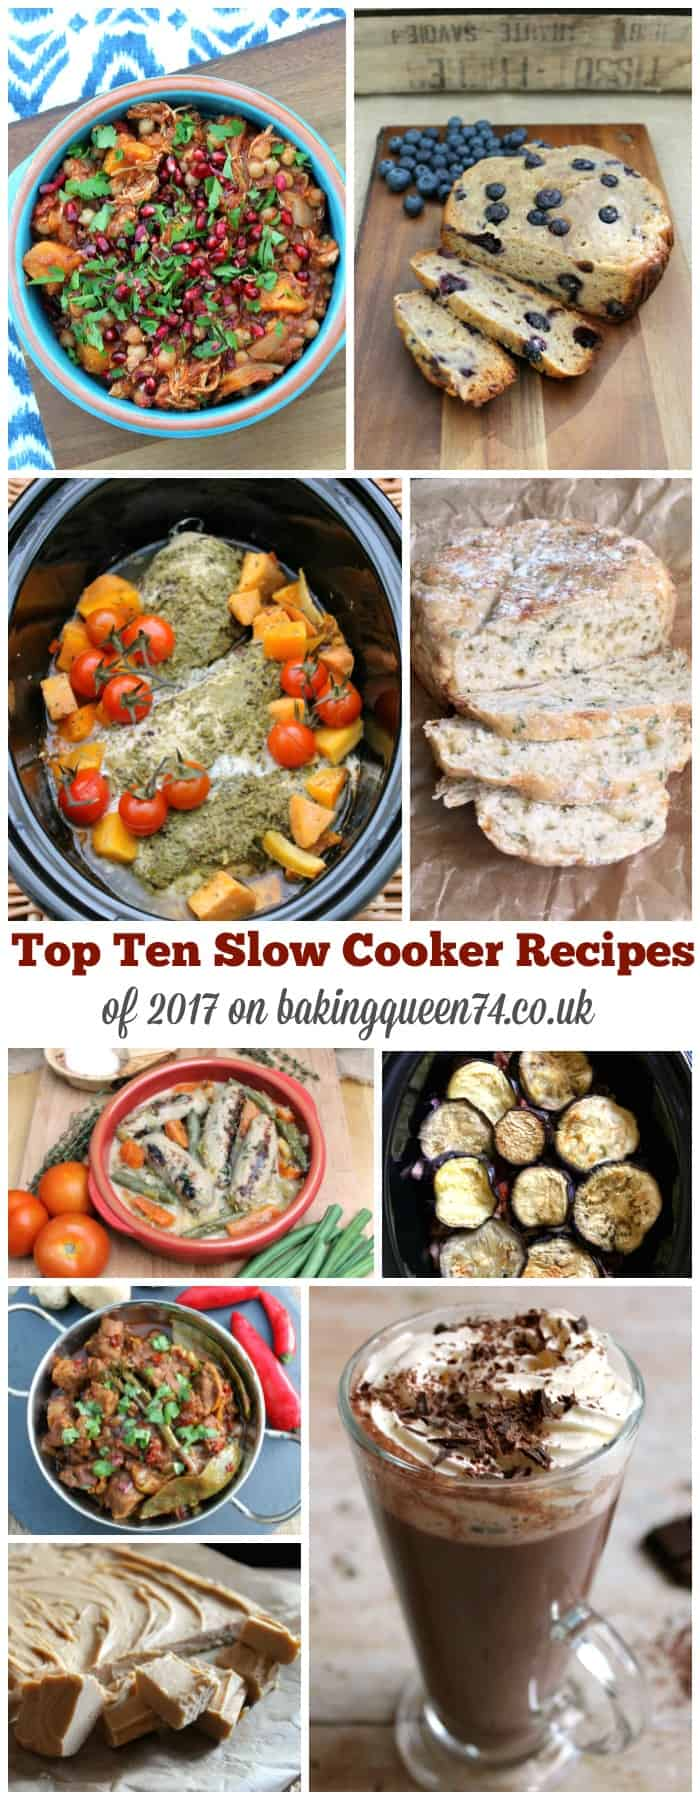 Top Ten Sparring Gloves In Red Used By World Champions: Top Ten Slow Cooker Recipes Of 2017